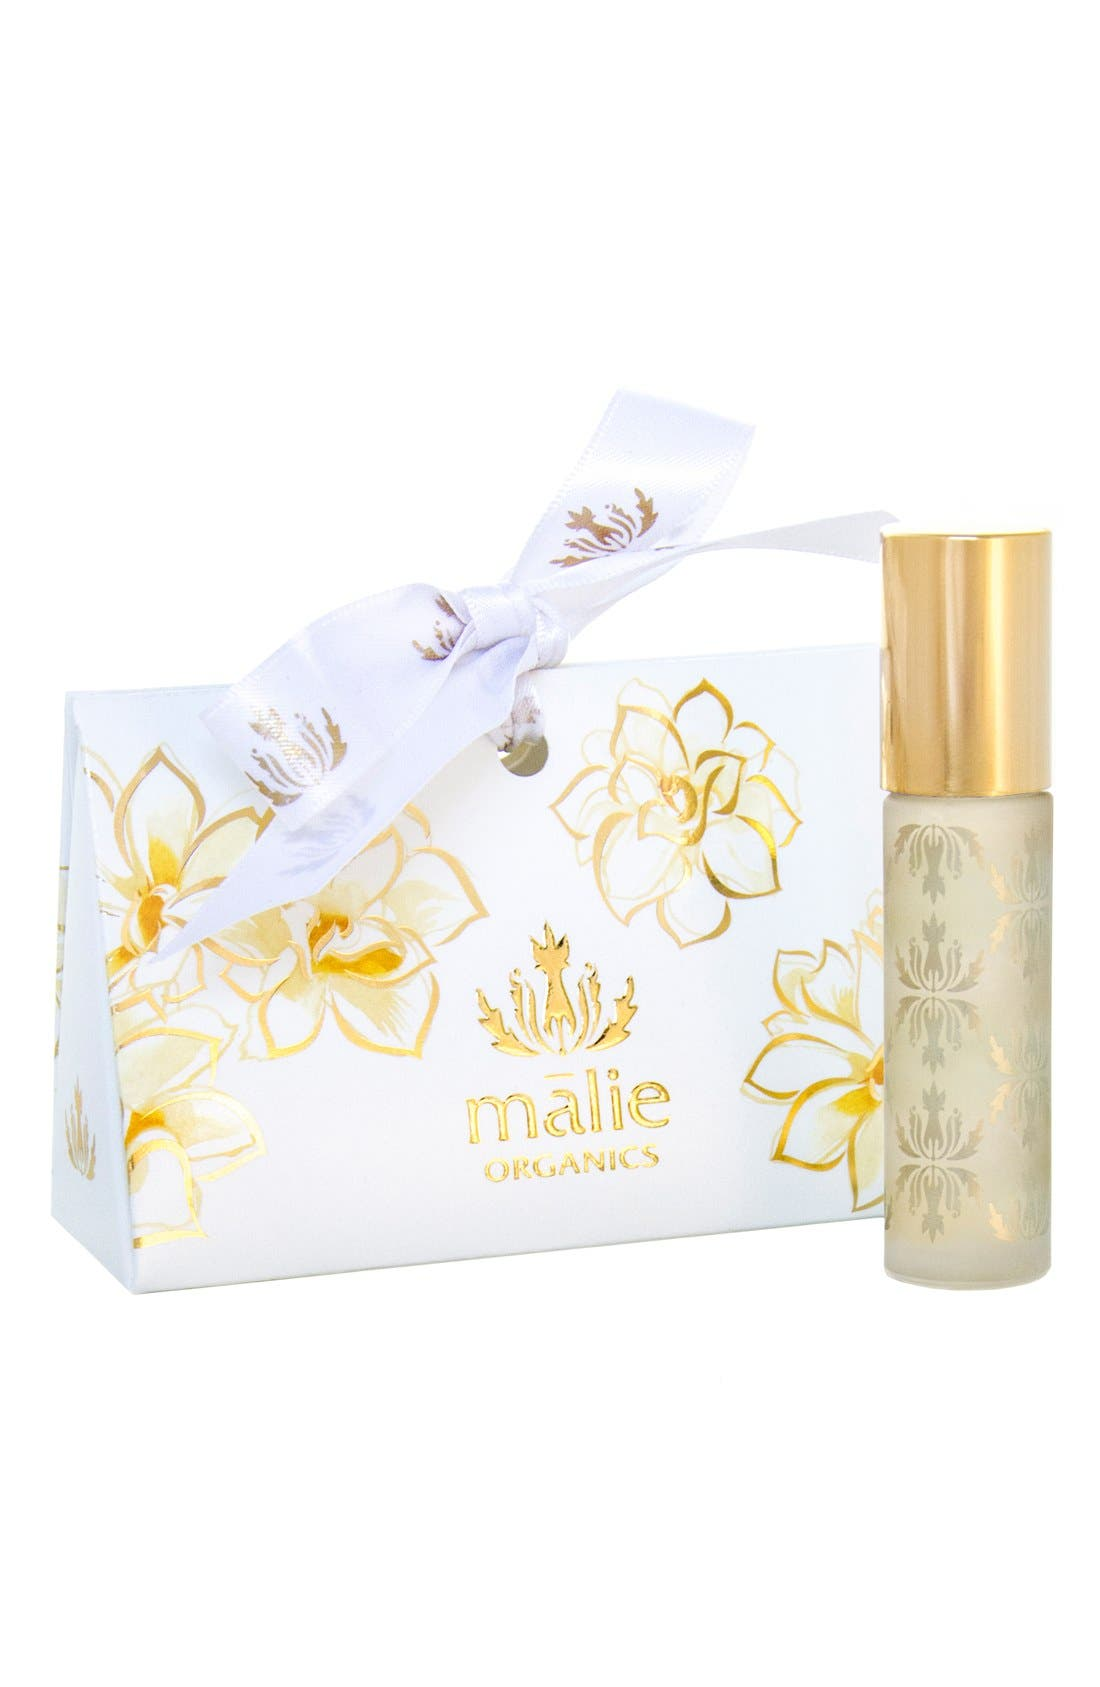 Malie Organics Pikake Organic Roll-On Perfume Oil